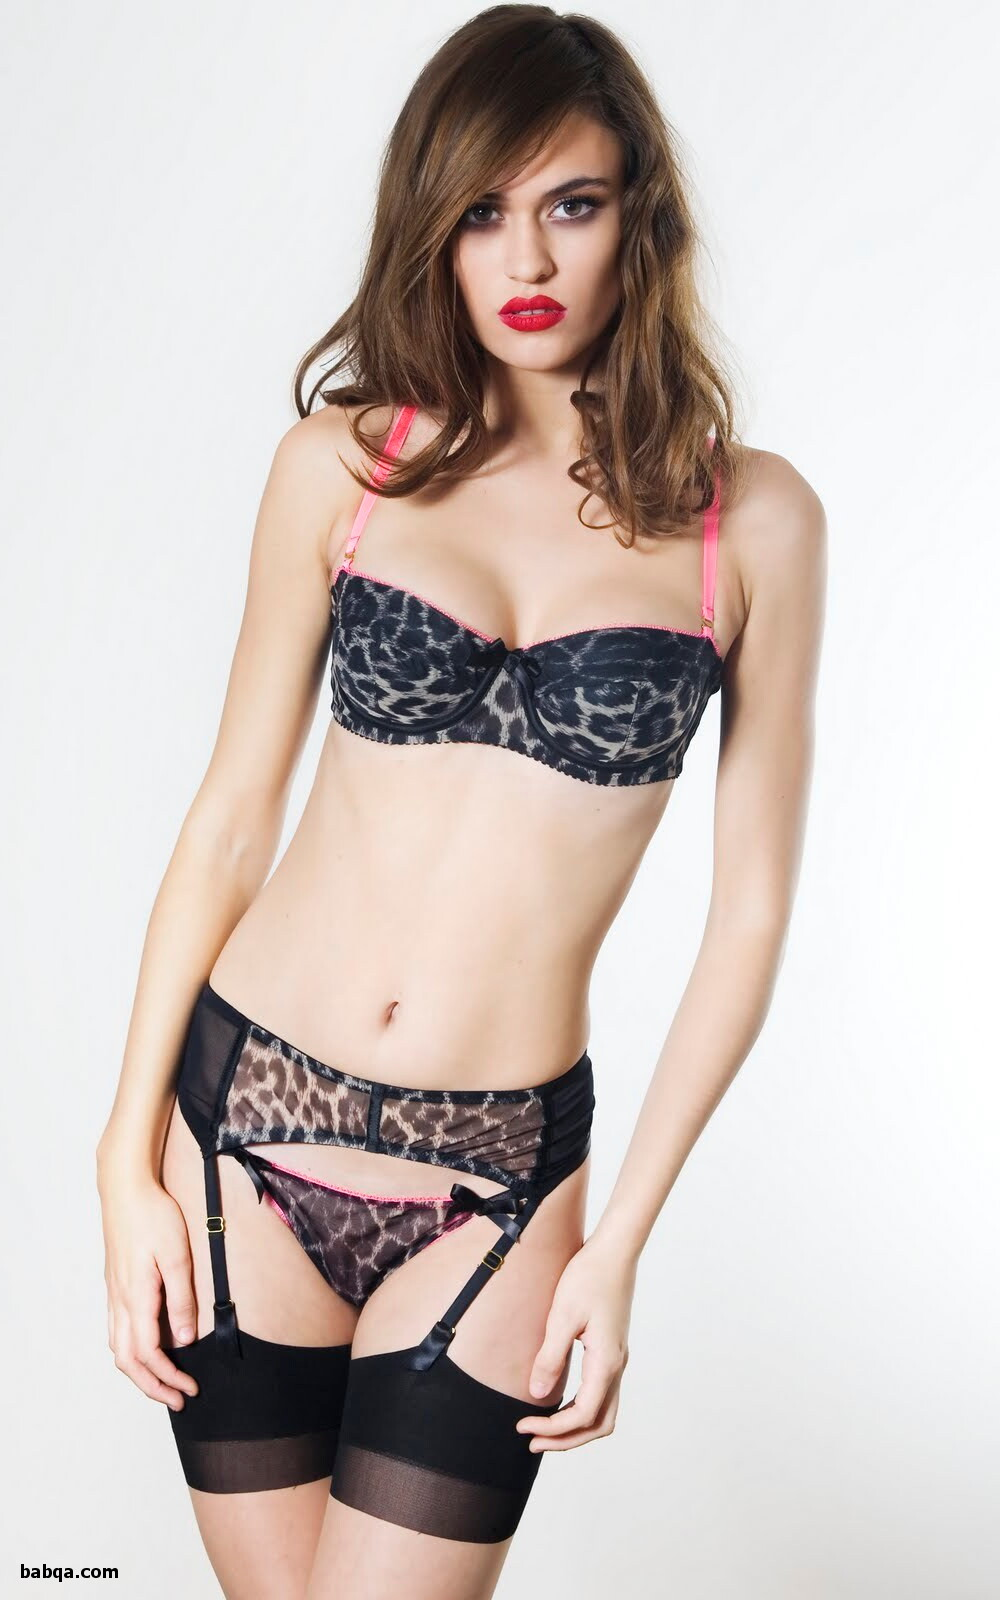 lingerie photo session and naked women in sexy lingerie